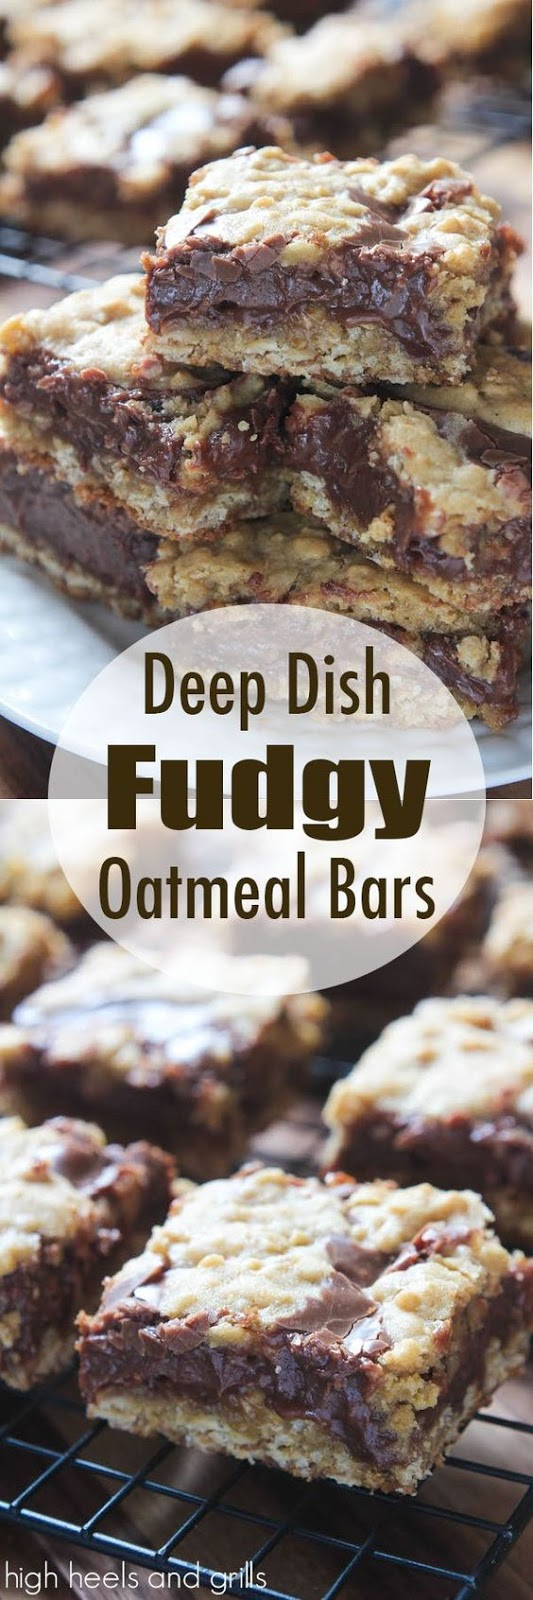 Deep Dish Fudgy Oatmeal Bars Recipe